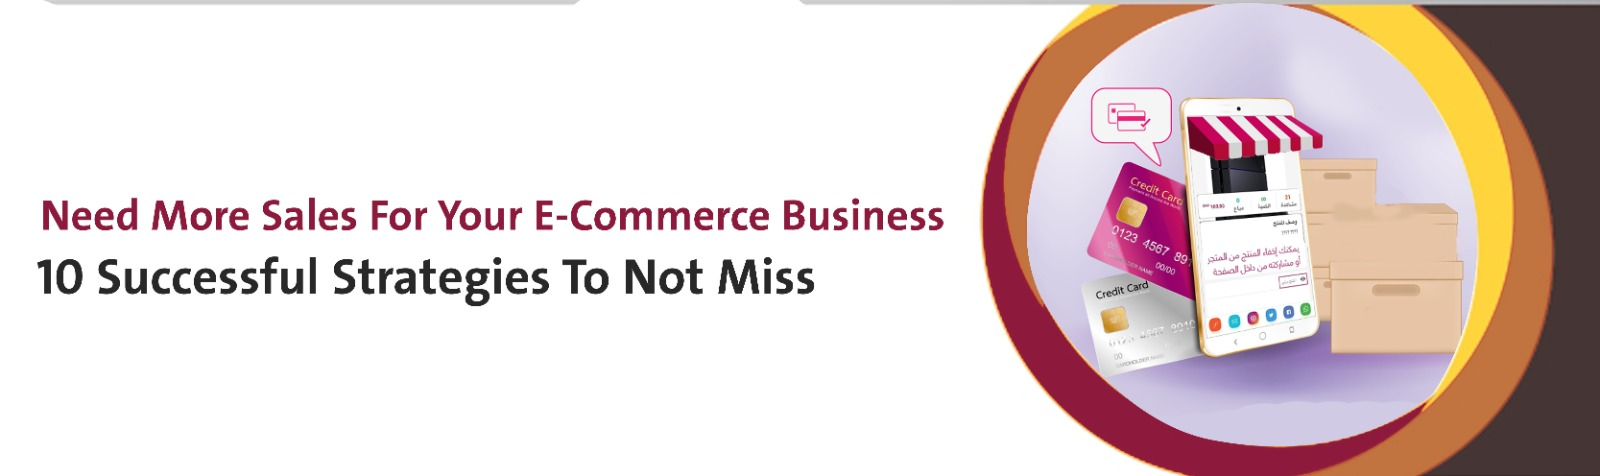 Need More Sales For Your E-Commerce Business? 10 Successful Strategies To Not Miss | Article Banner | Sadad